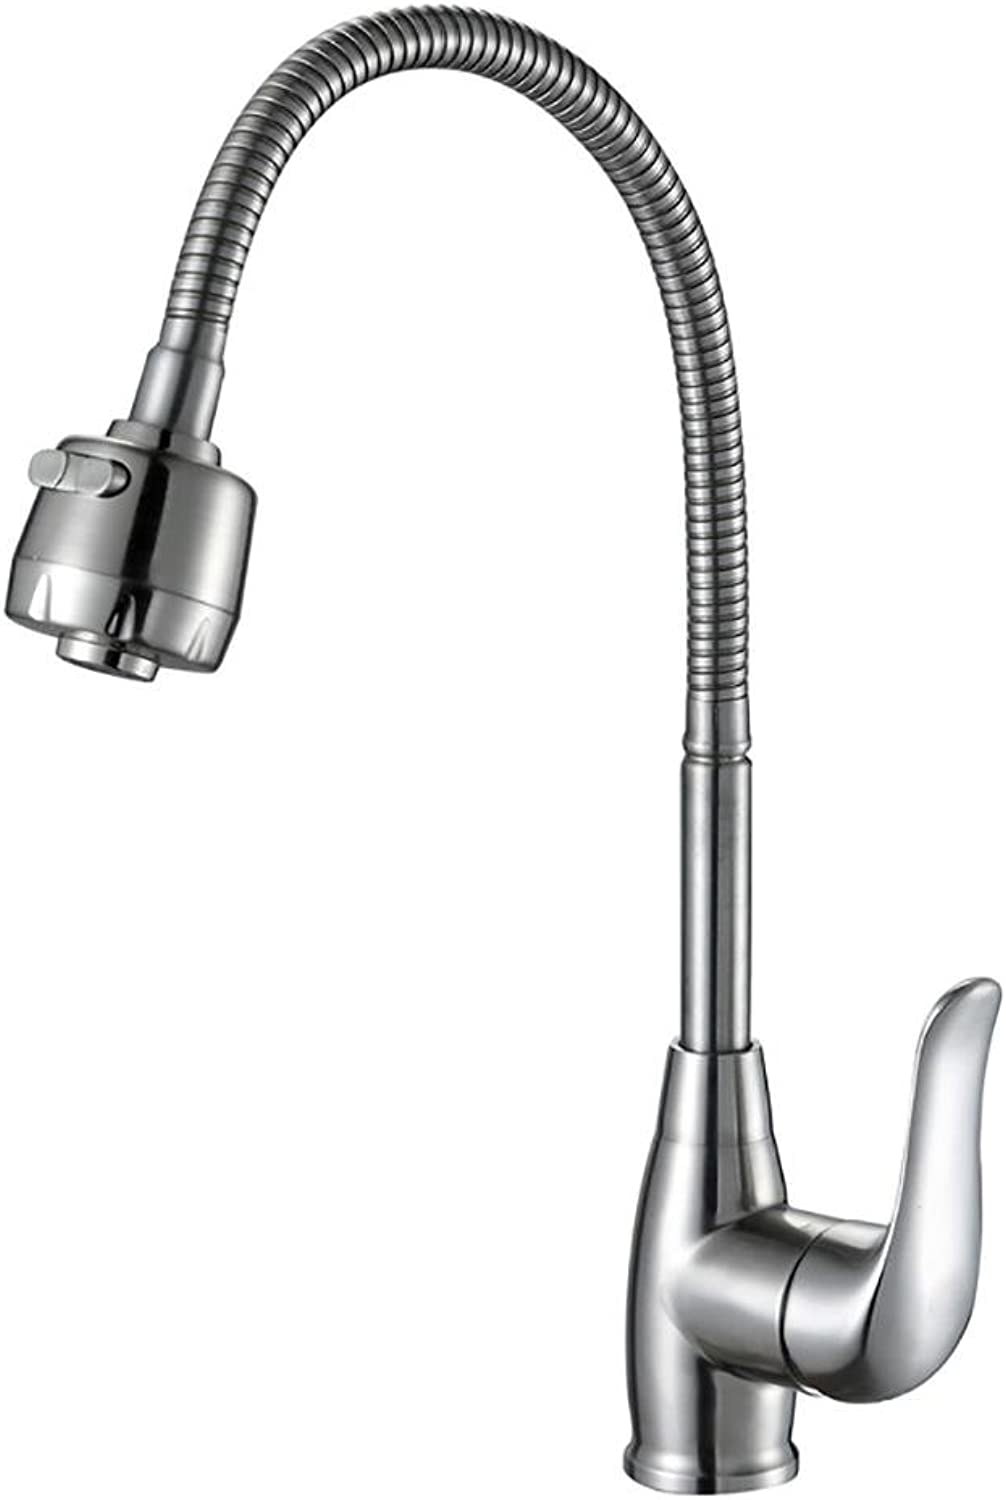 SHUILTOU 304 Stainless Steel Kitchen Faucet hot and Cold Drawing can be redated